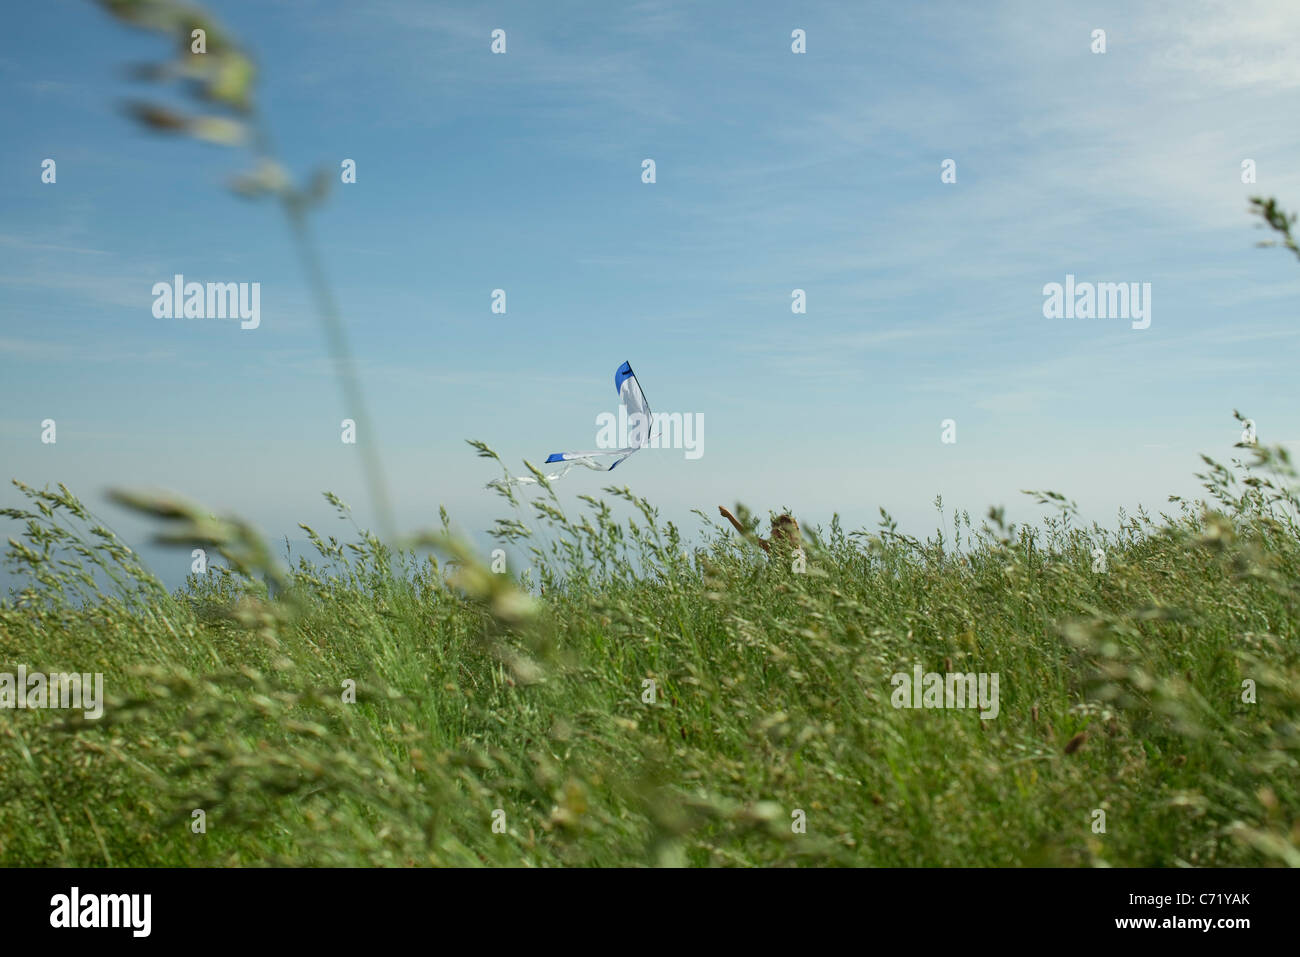 Person flying kite in field - Stock Image